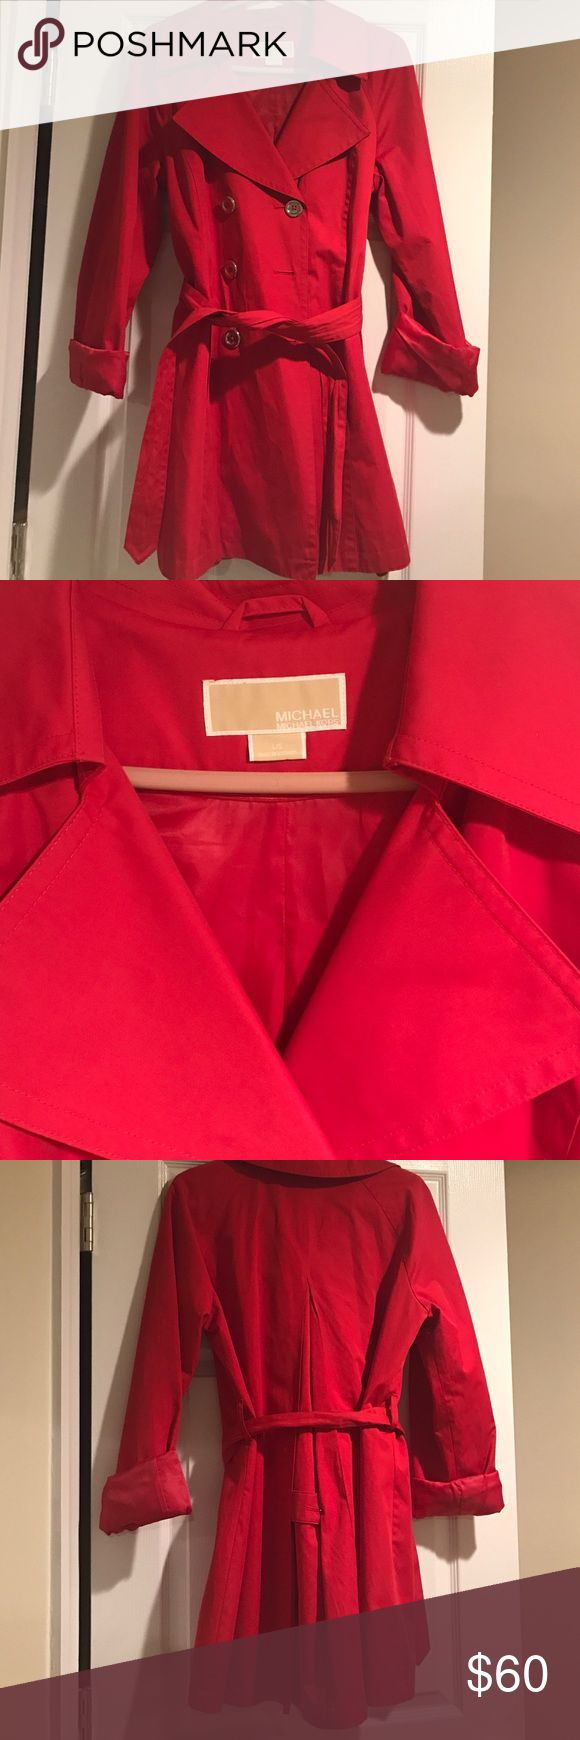 Michael Kors red trench coat Authentic, Beautiful, next to new red trench coat from Michael Kors. The color is a fun, vibrant red. Michael Kors Jackets & Coats Trench Coats